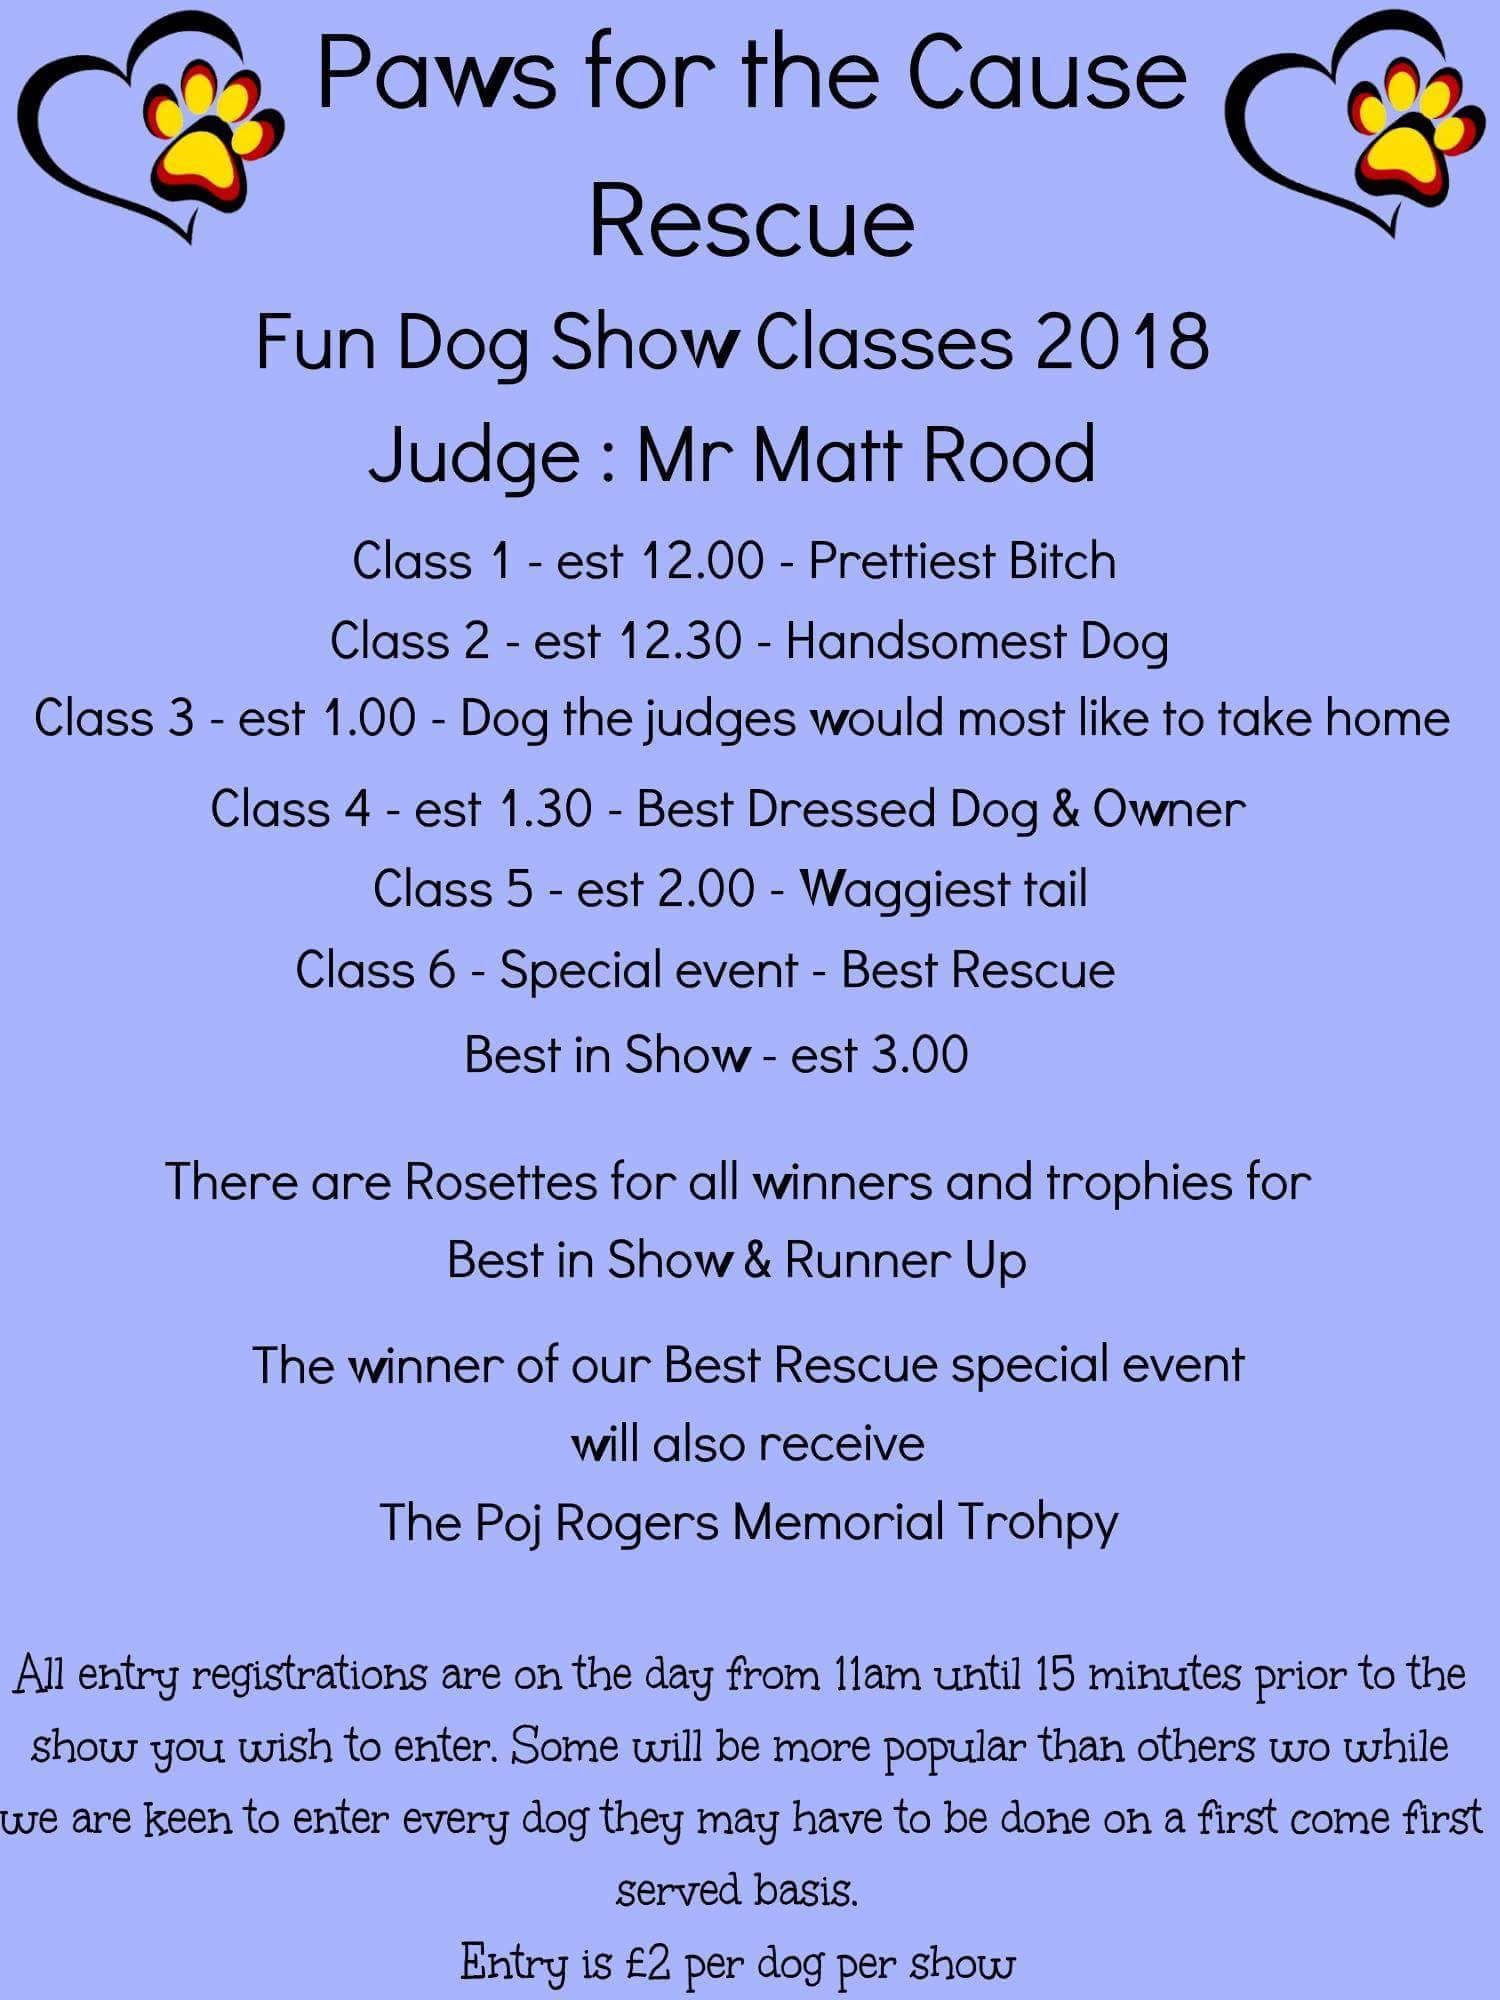 Paws for the Cause 2018 Dog Show Schedule